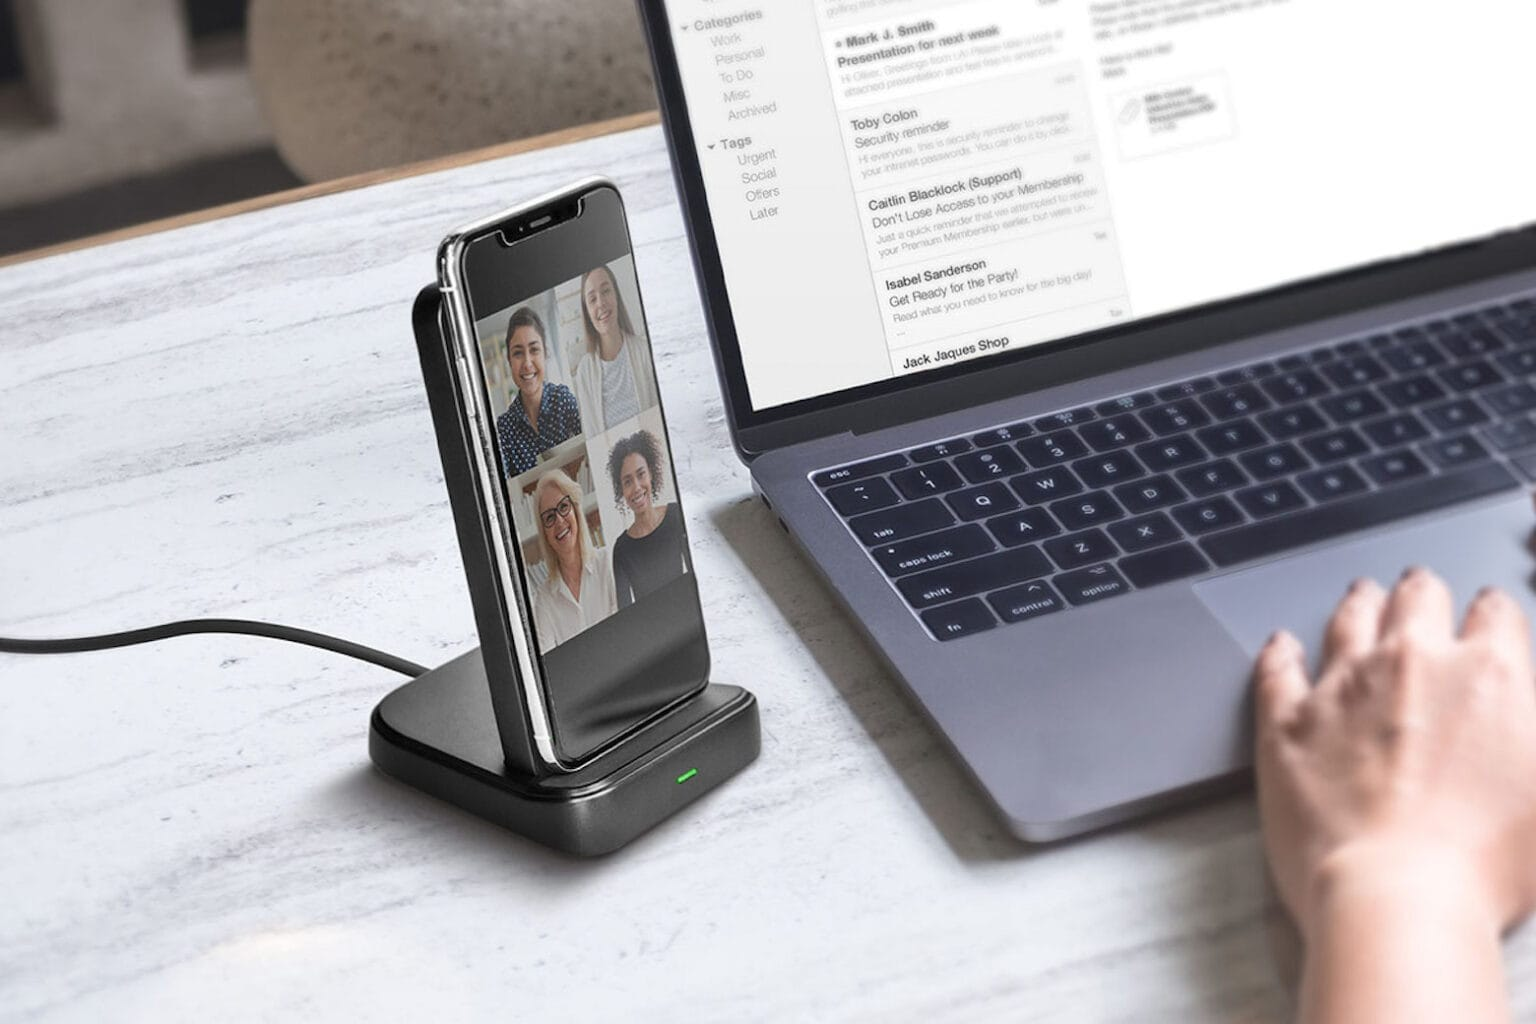 Charge up to 3 devices at once with this innovative dock